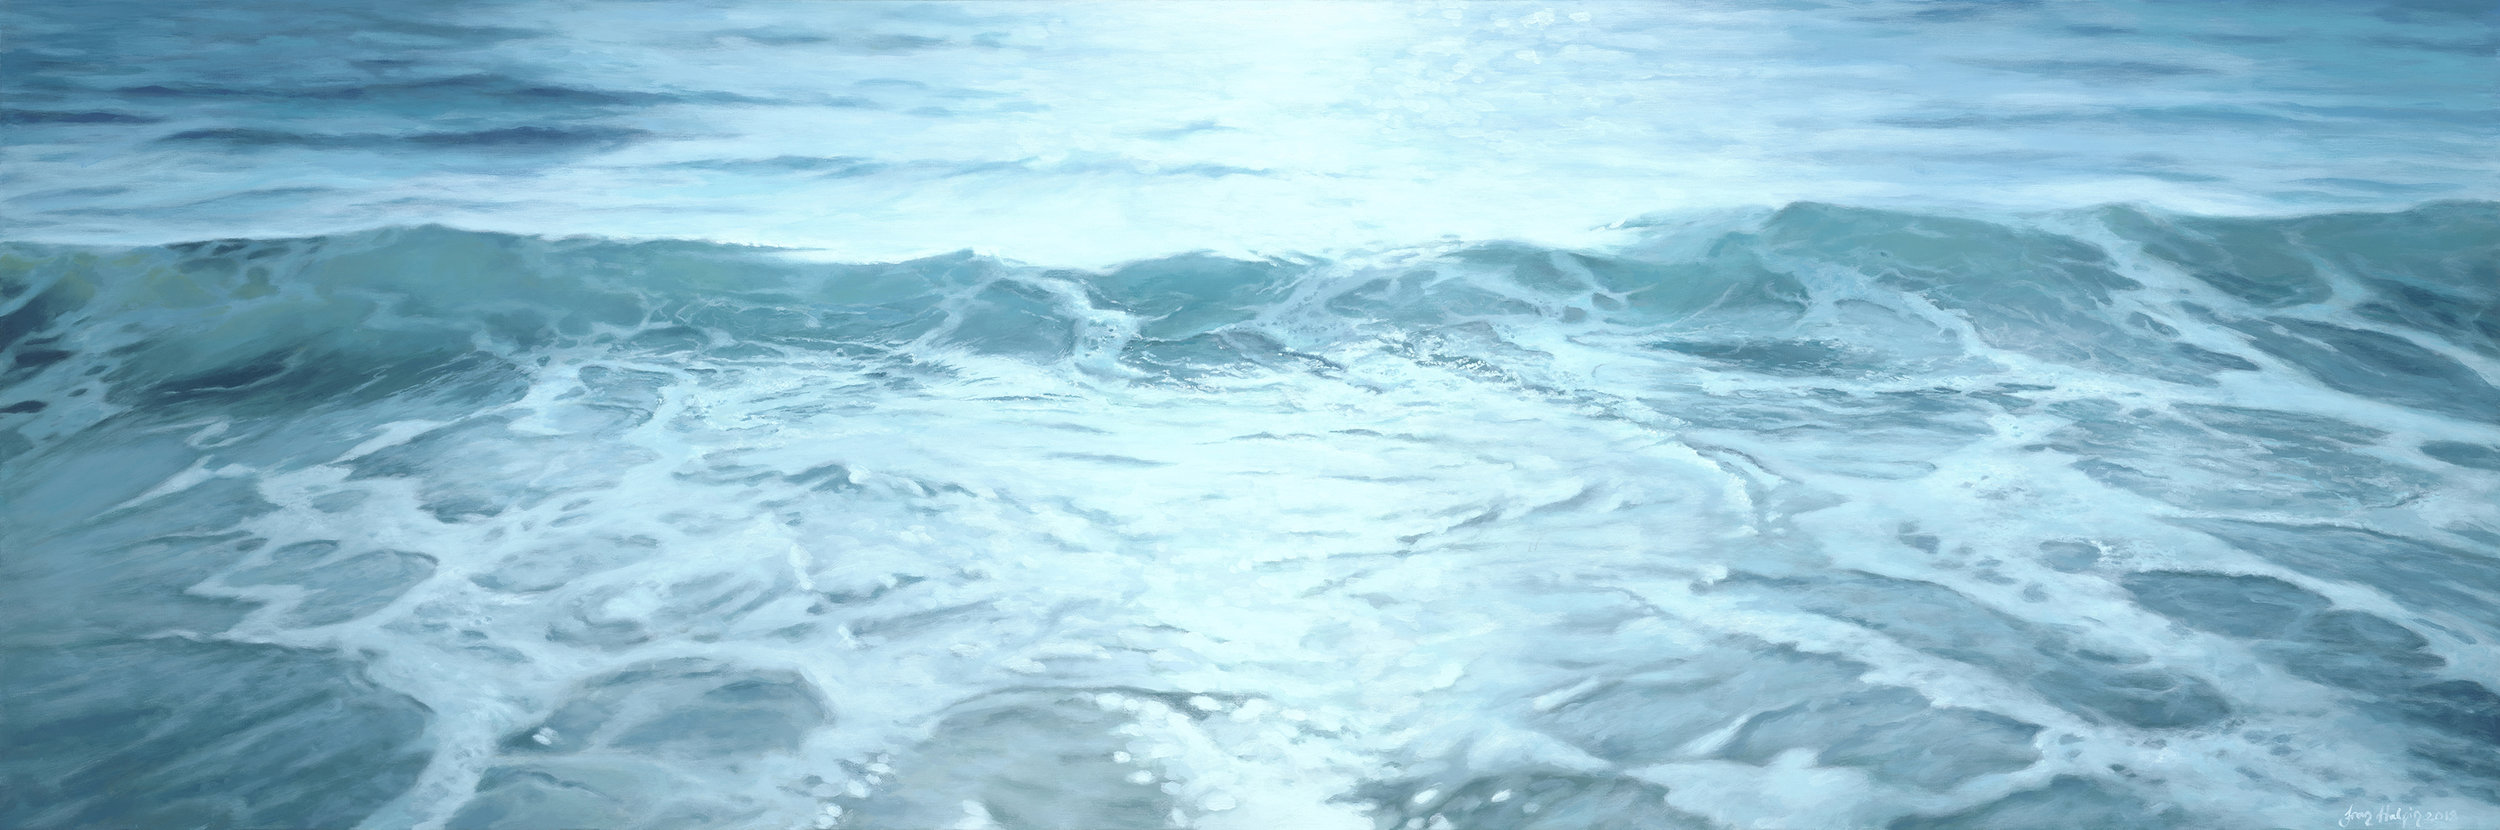 The Now €1,750 150cm x 50cm ocean painting